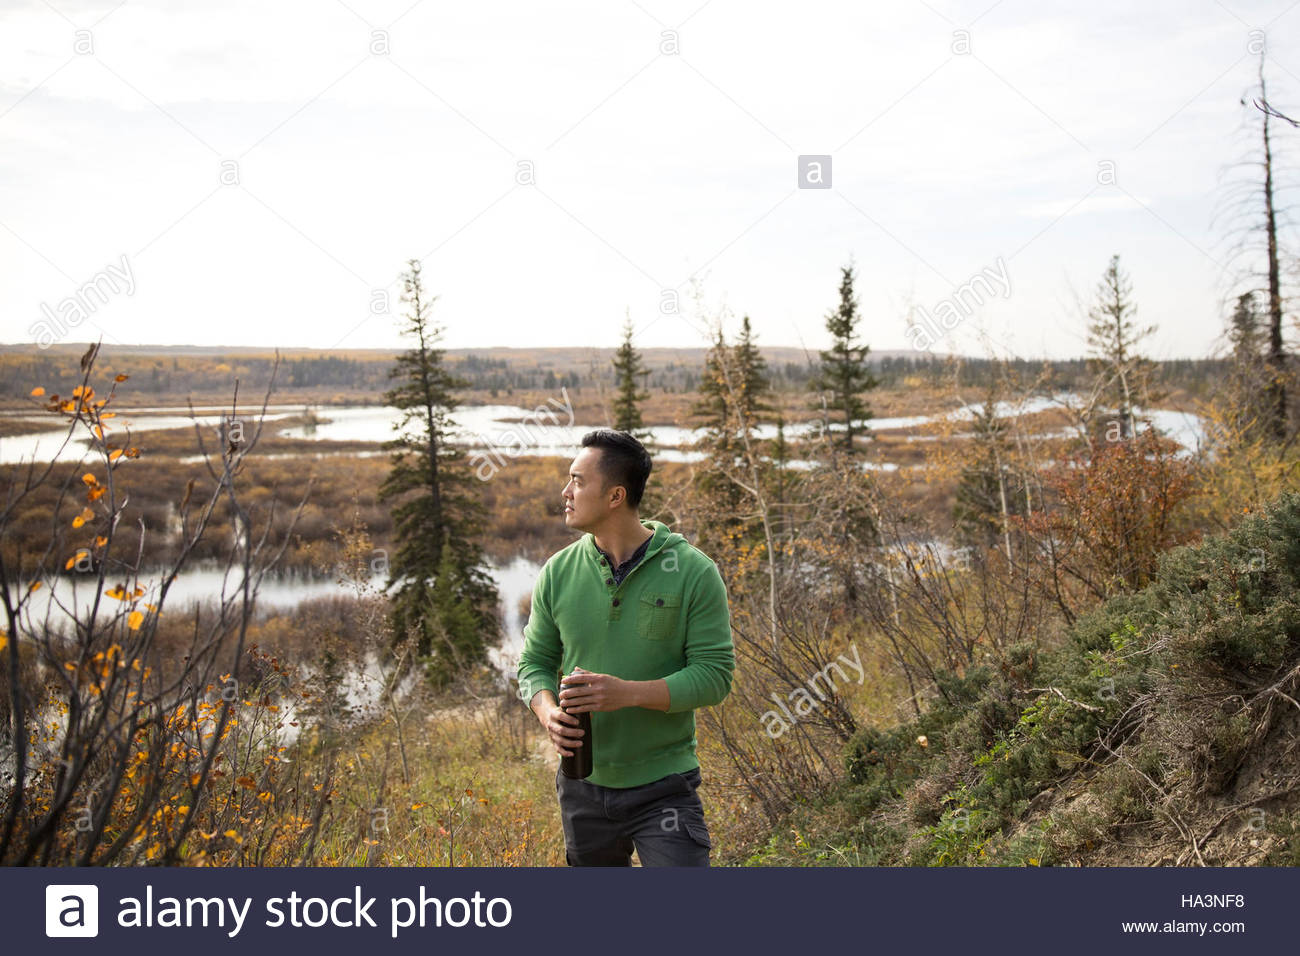 Man with water bottle hiking looking away at autumn lakeside - Stock Image